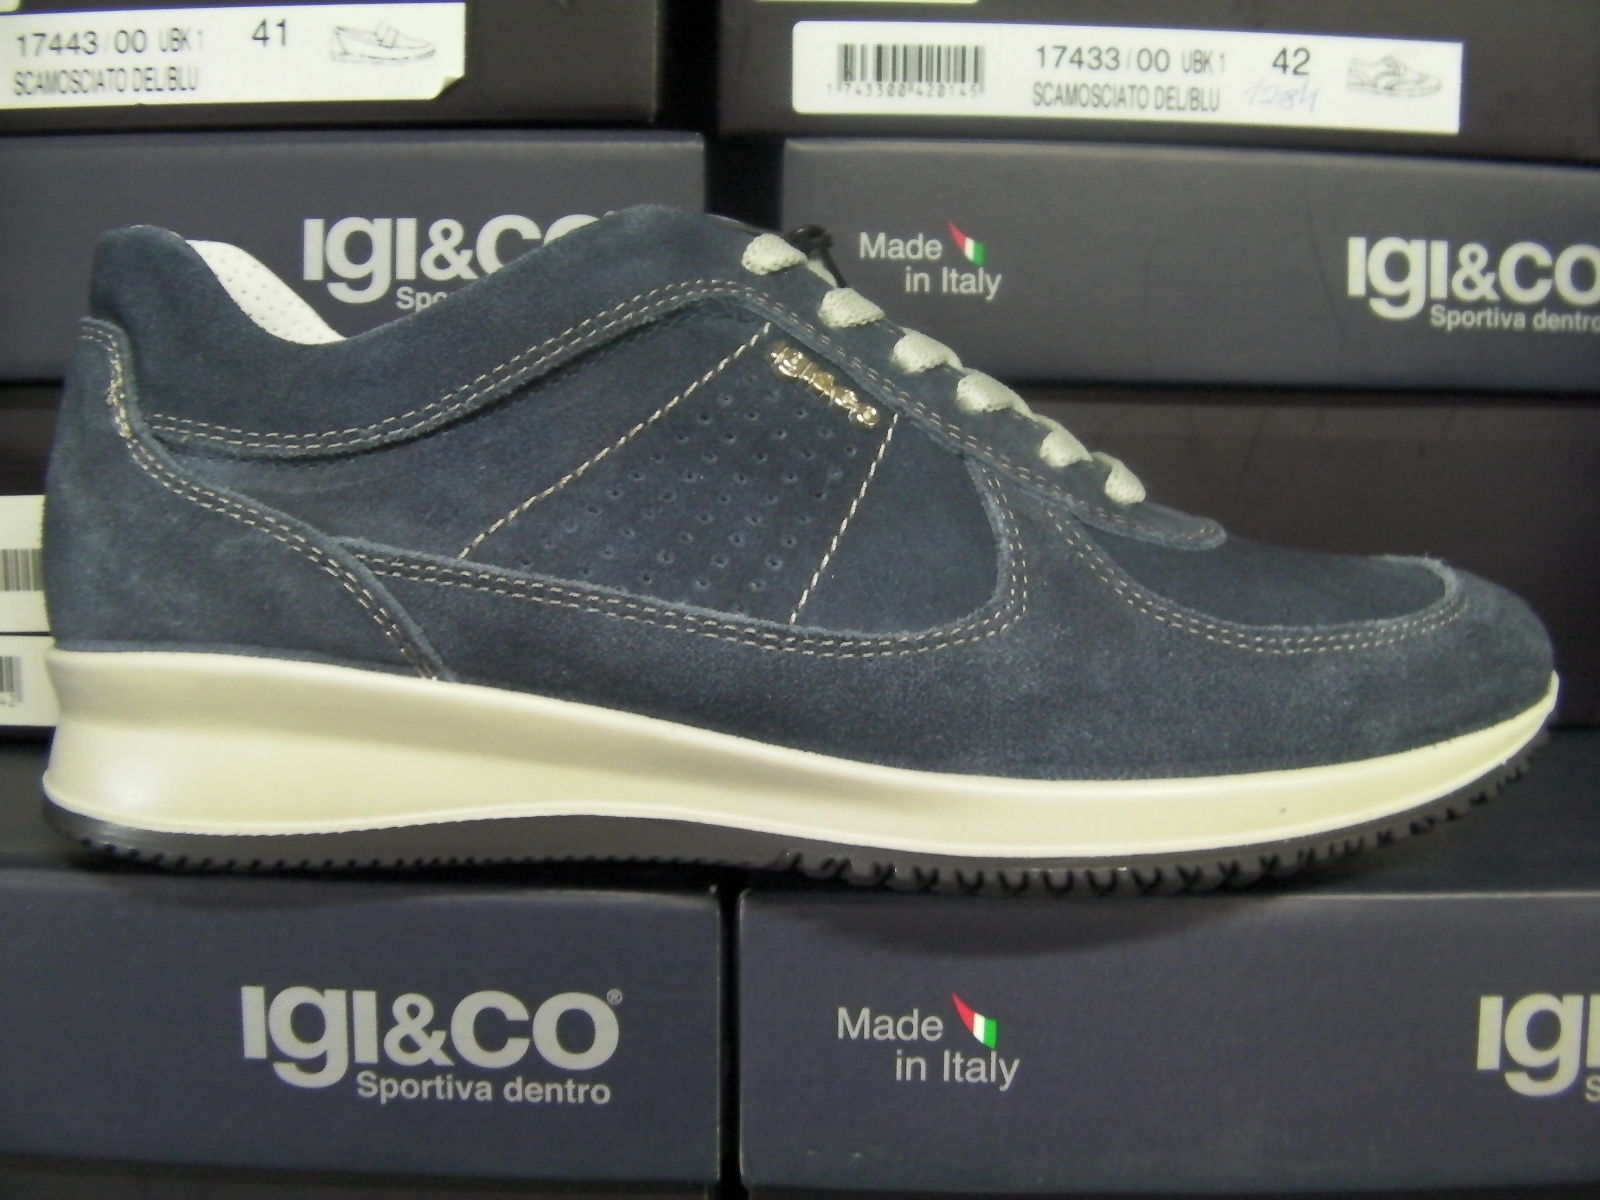 SCARPE CASUAL SNEAKERS UOMO IGI&CO IGIECO ORIGINALE 17540 PELLE SHOES NEW